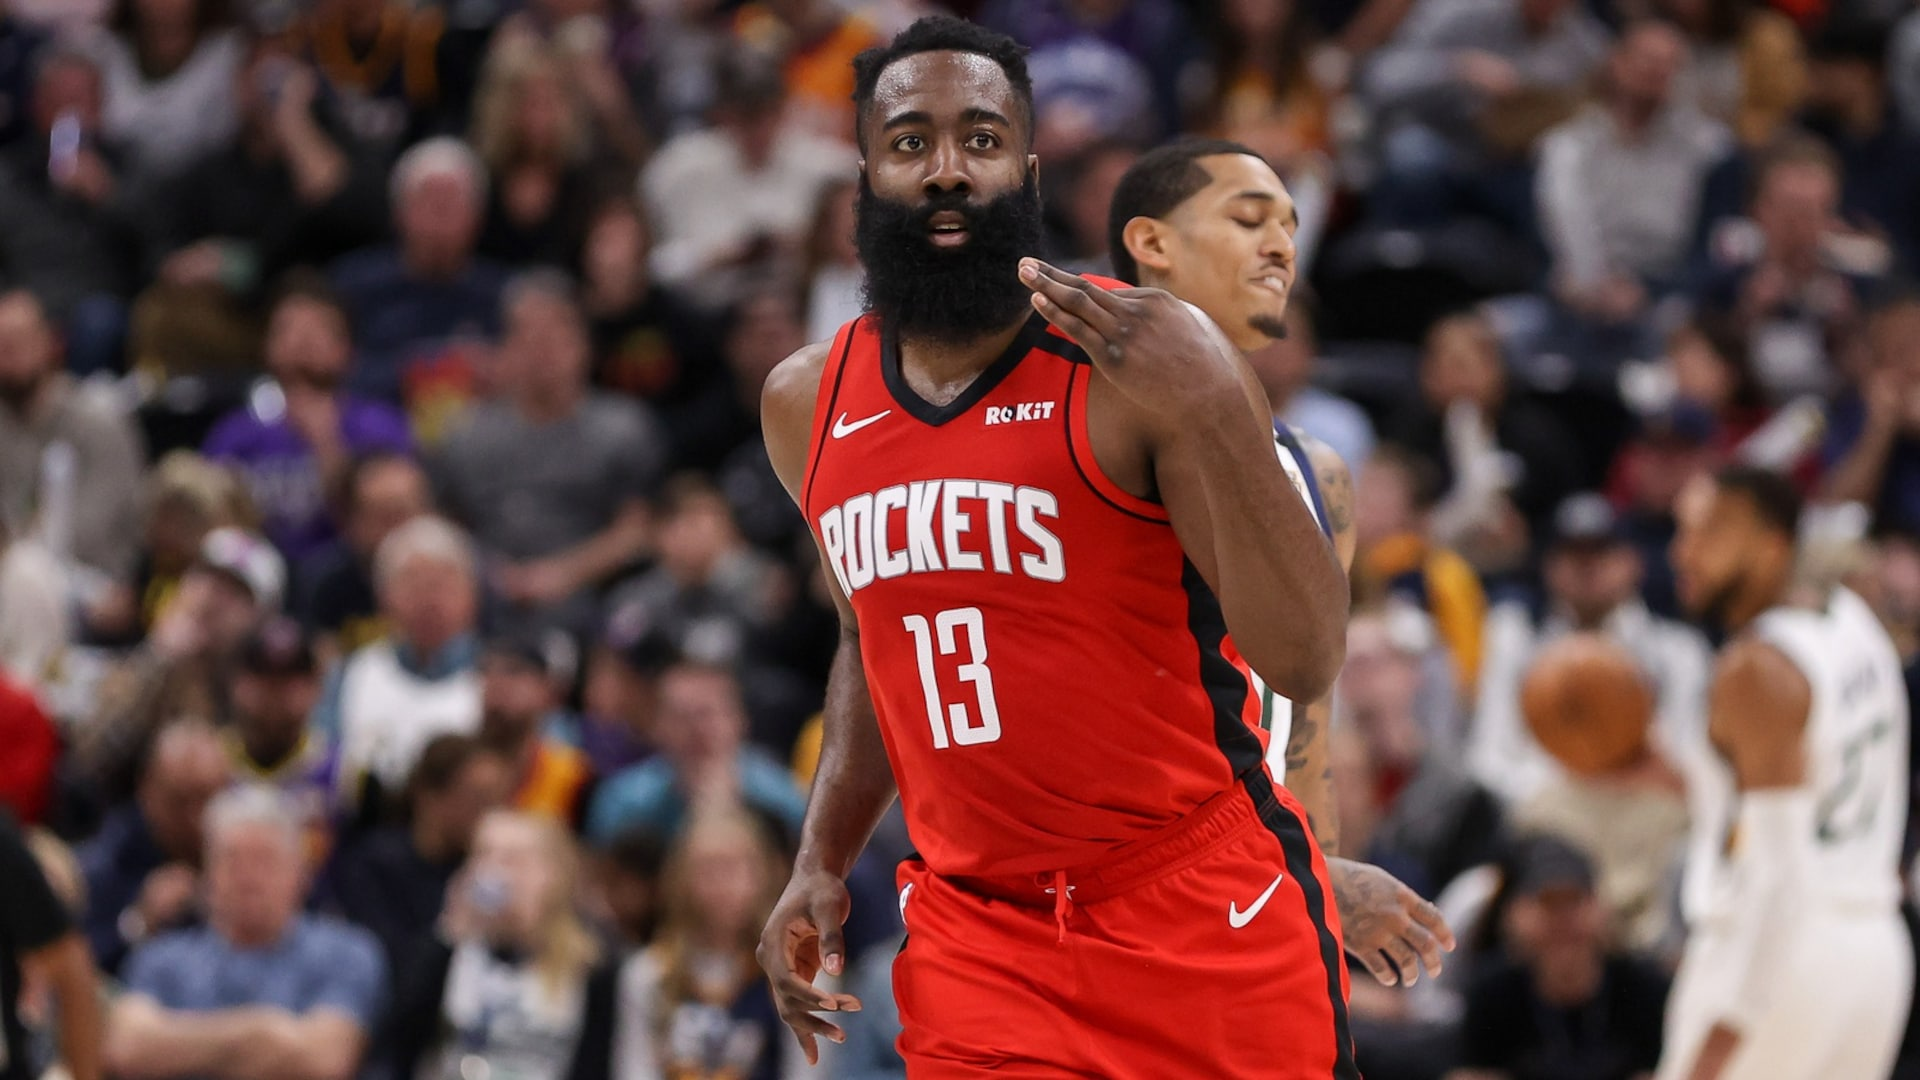 Power Rankings, Week 19: Rockets surge into Top 5; Pelicans continue to rise as standings tighten